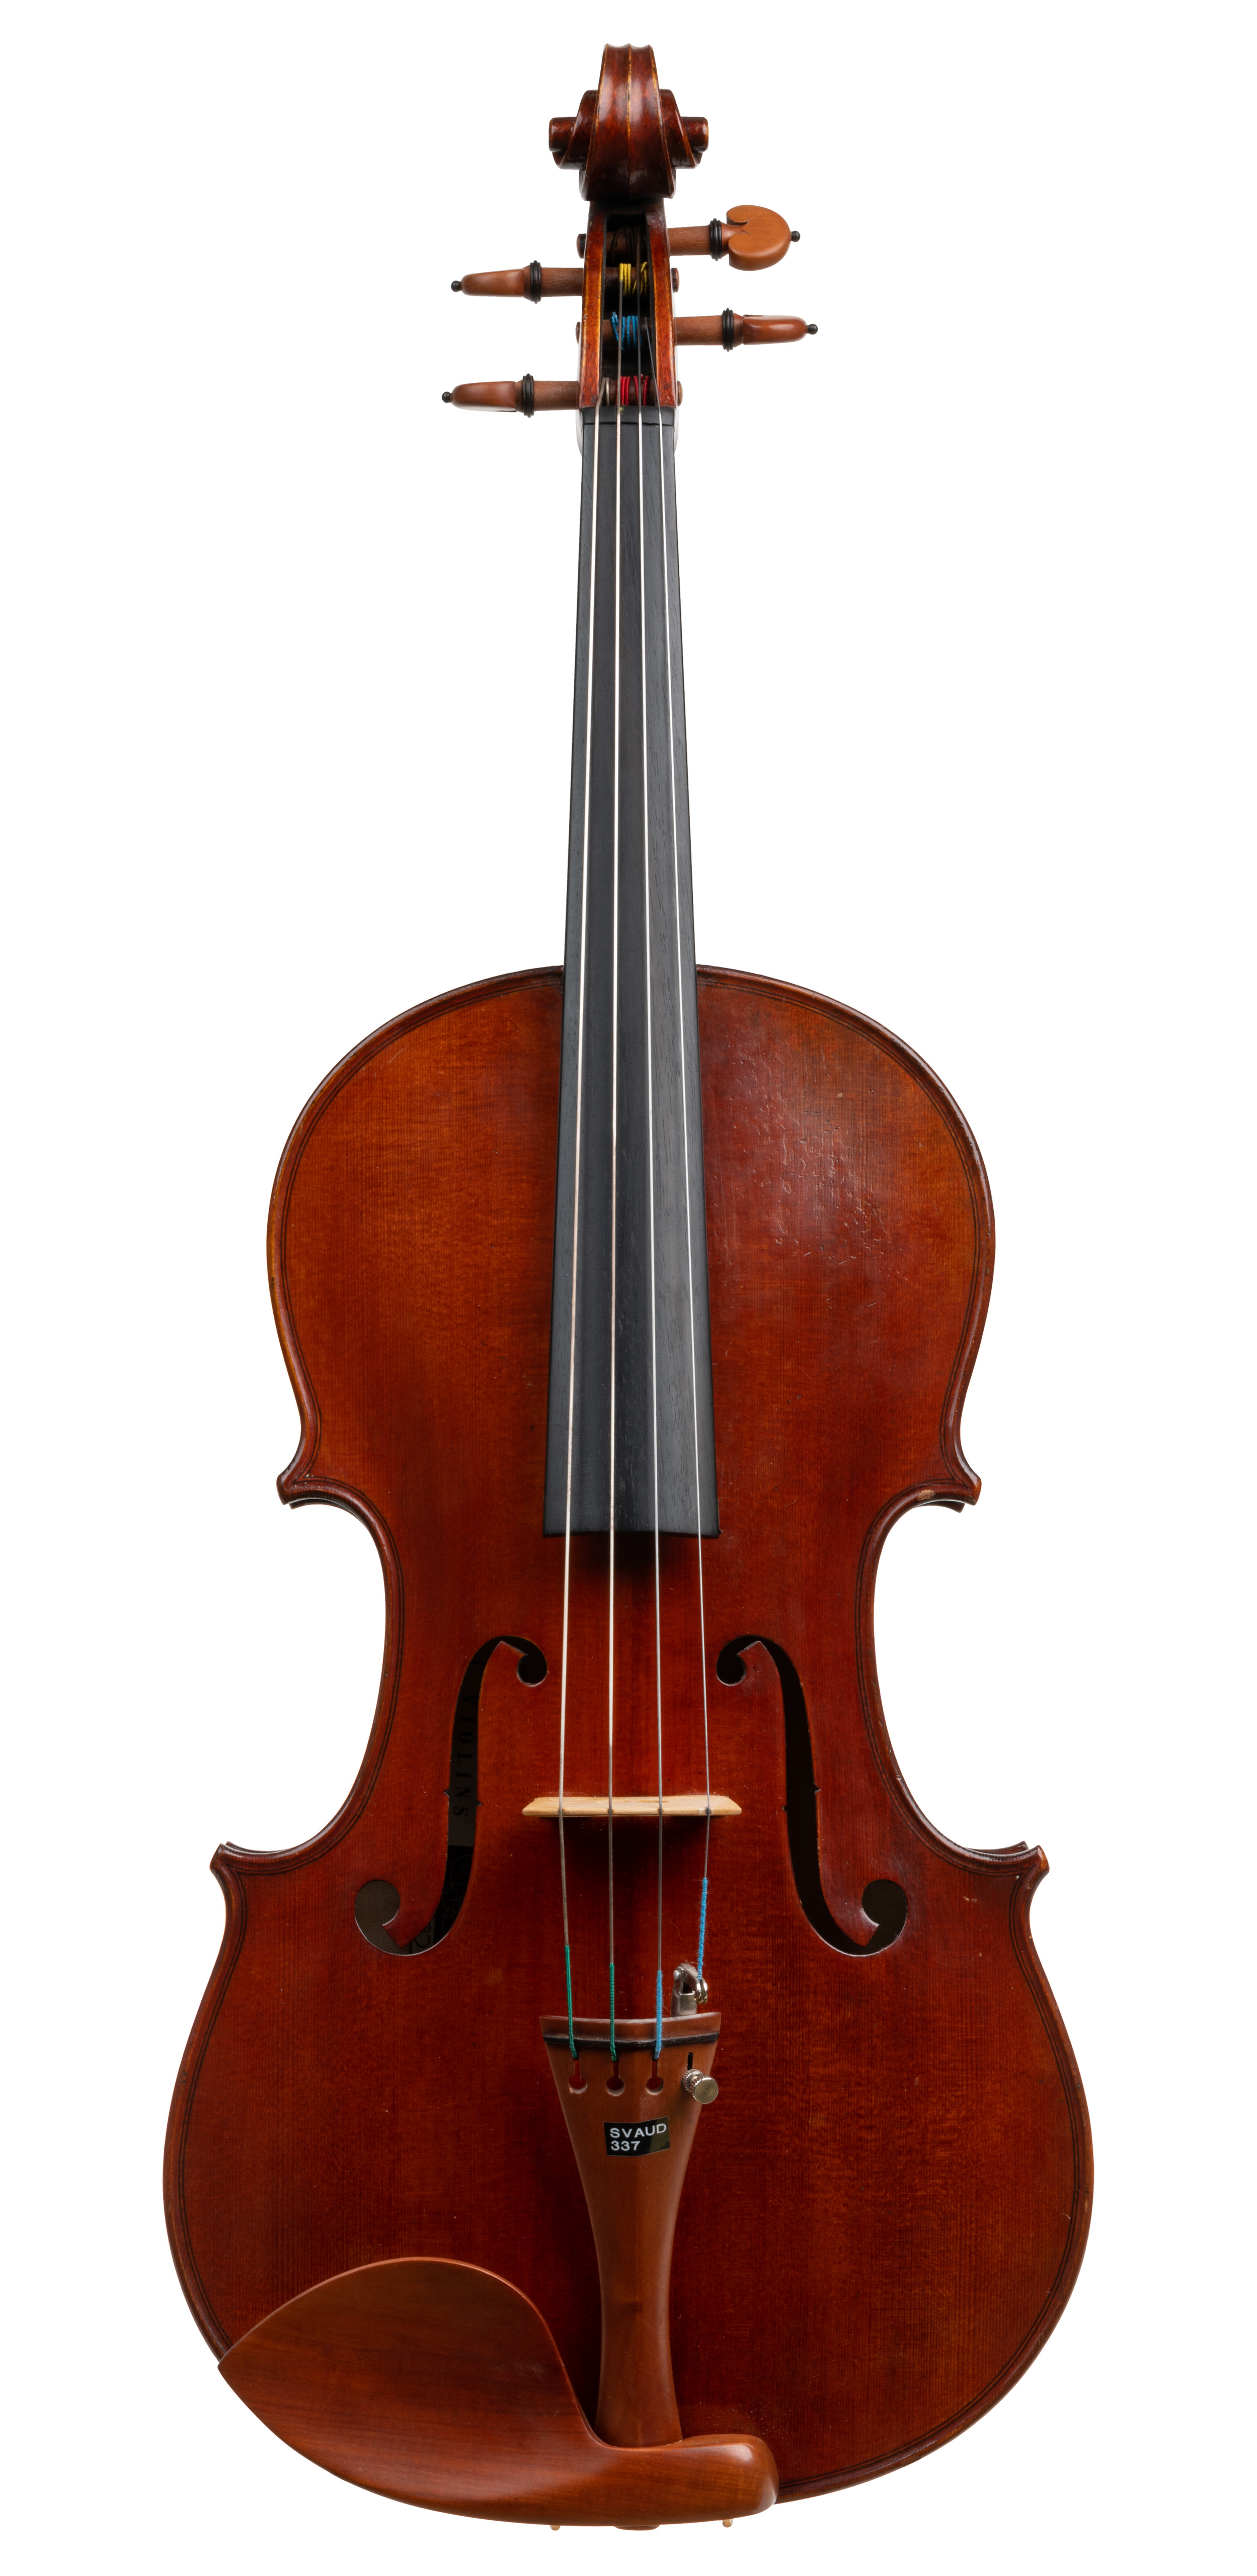 Seman Violins, Chicago, 2010, 16